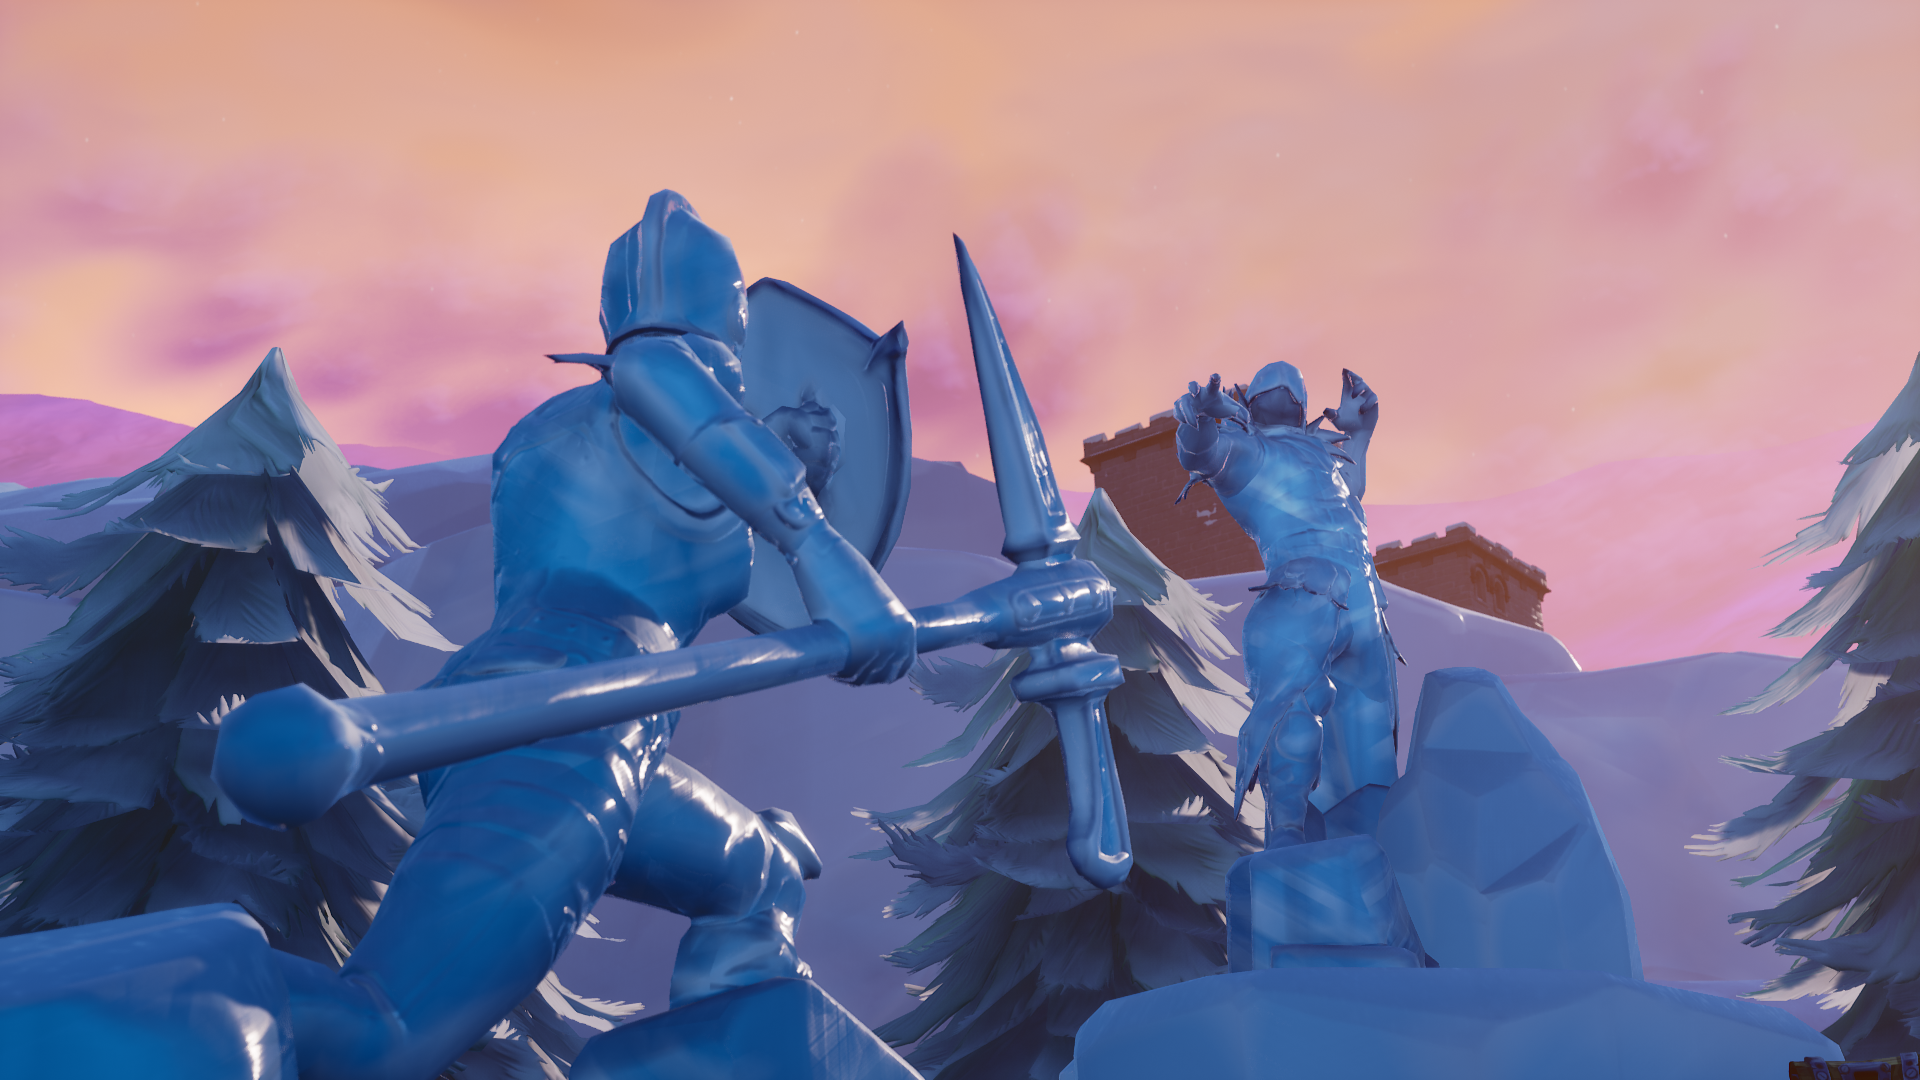 Frozen Red Knight Wallpapers Wallpaper Cave